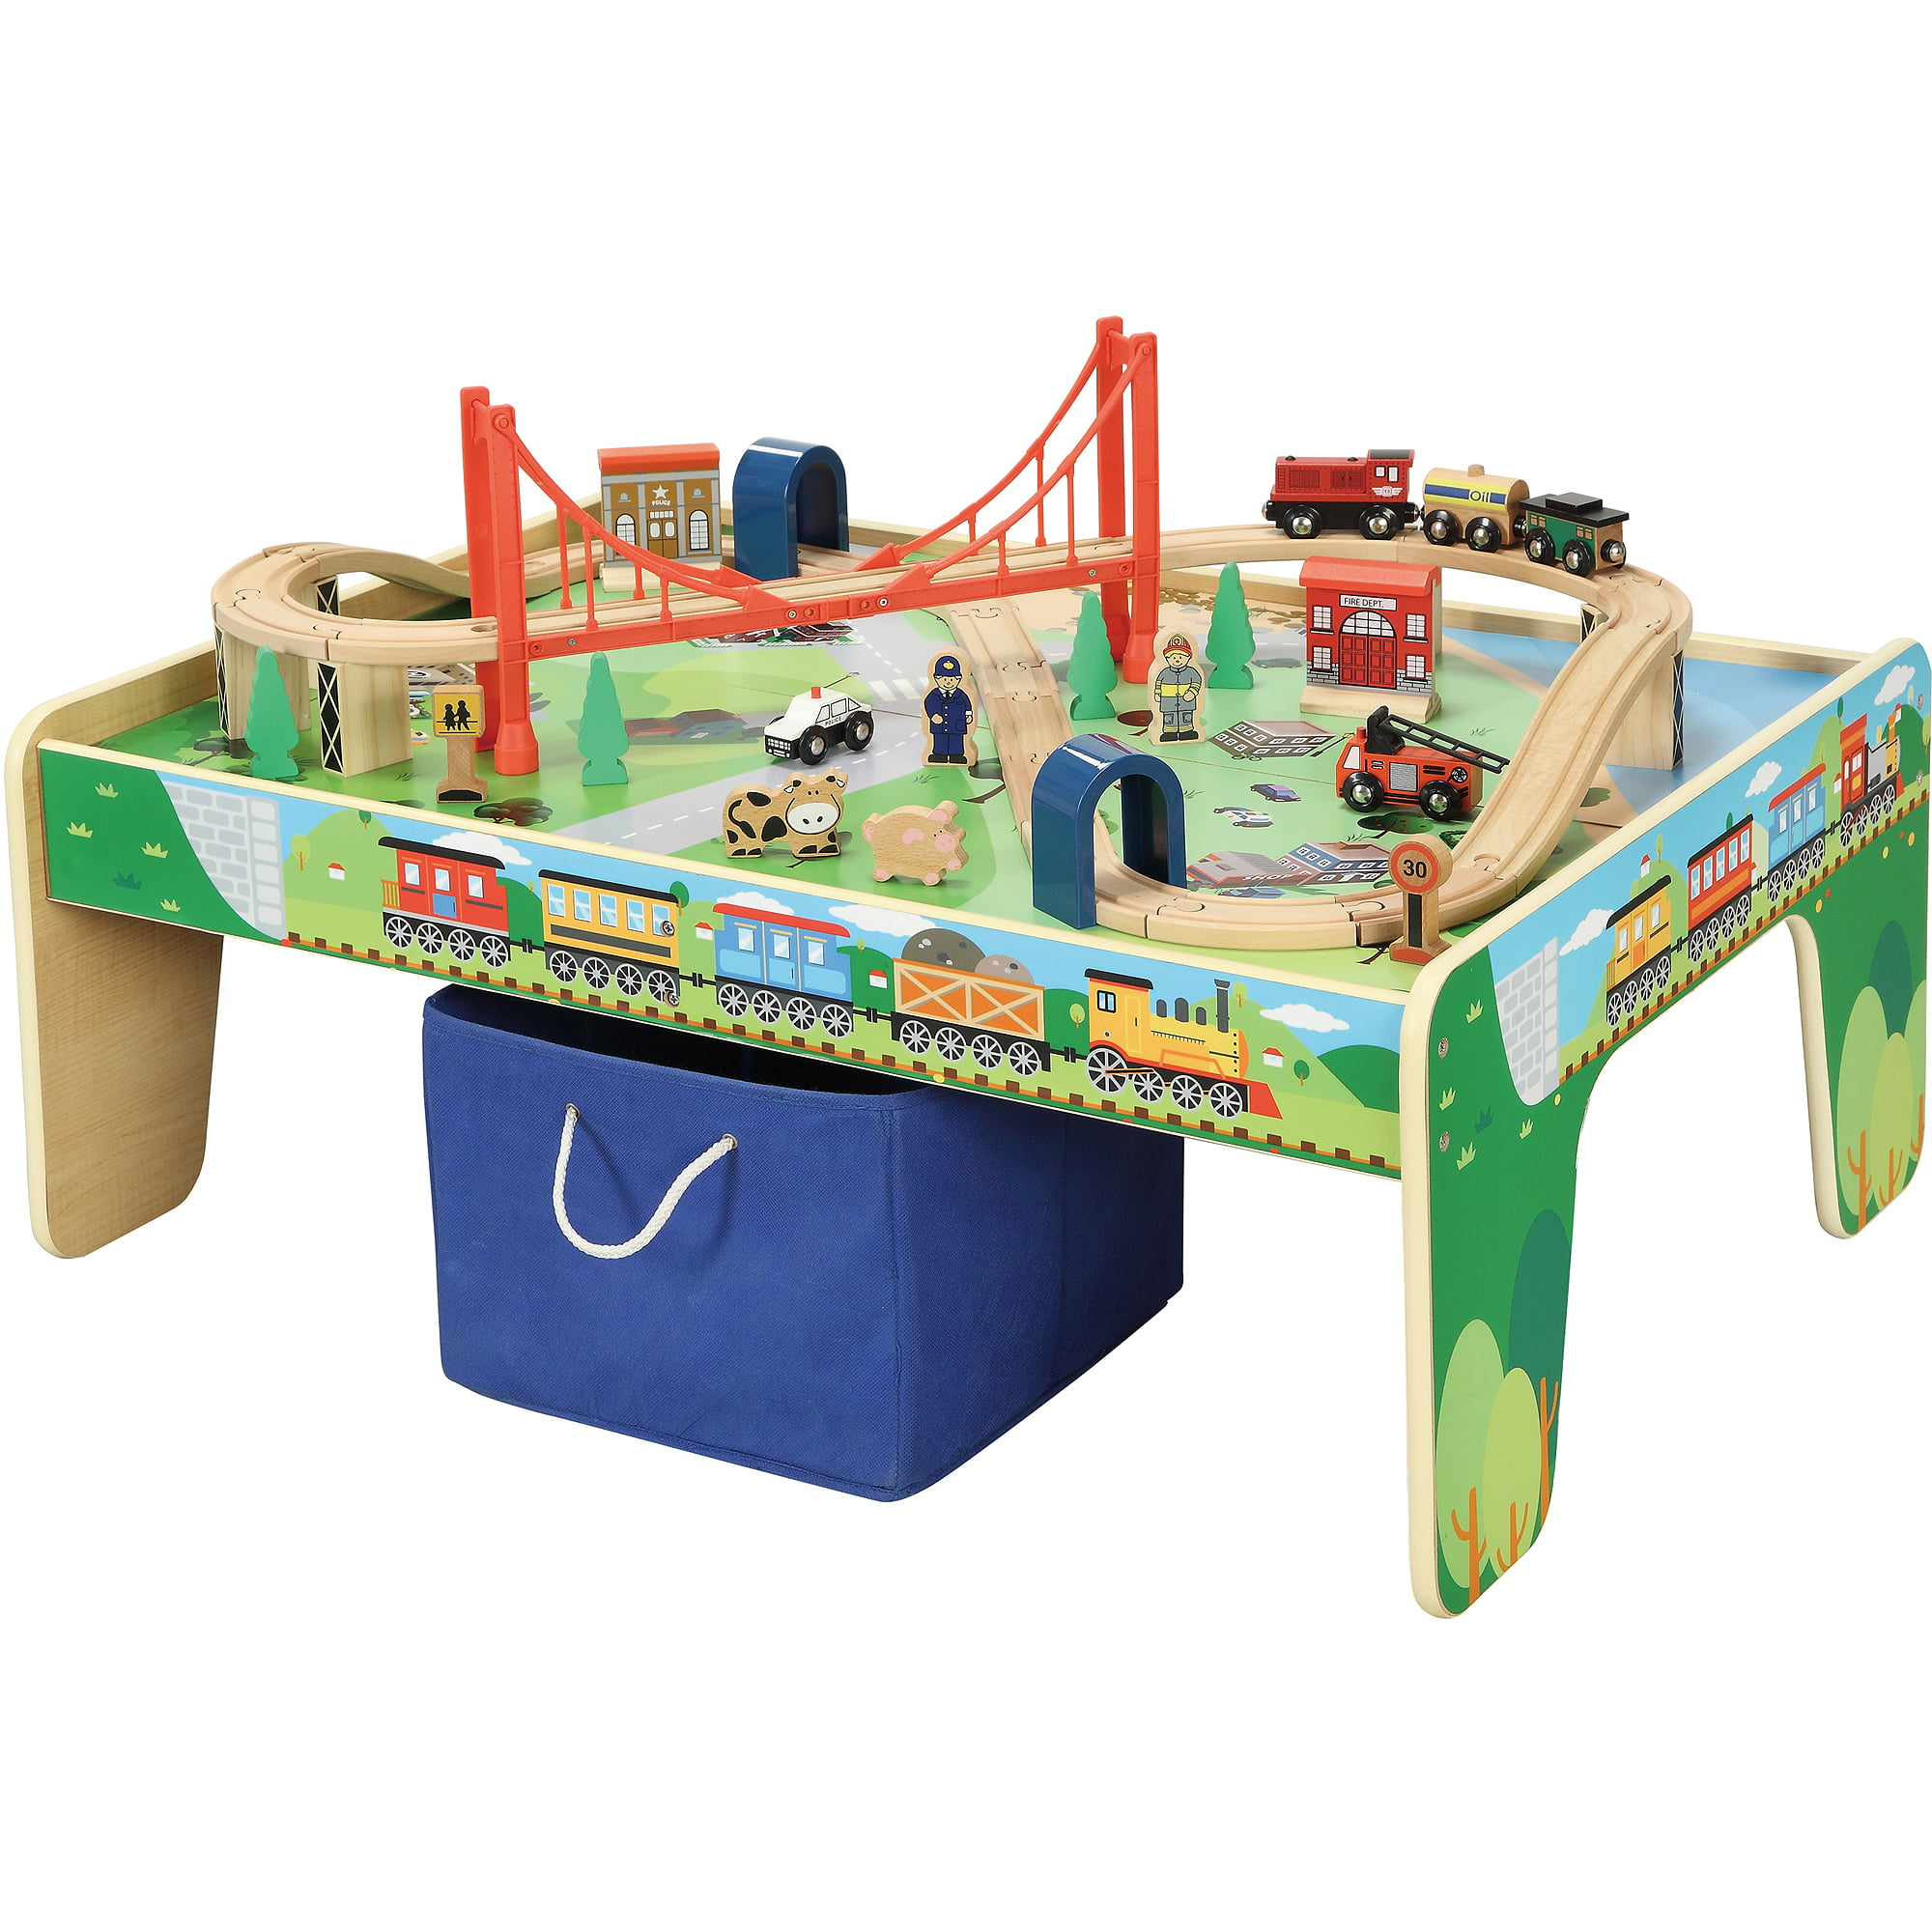 sc 1 st  Walmart : train set table for kids - pezcame.com